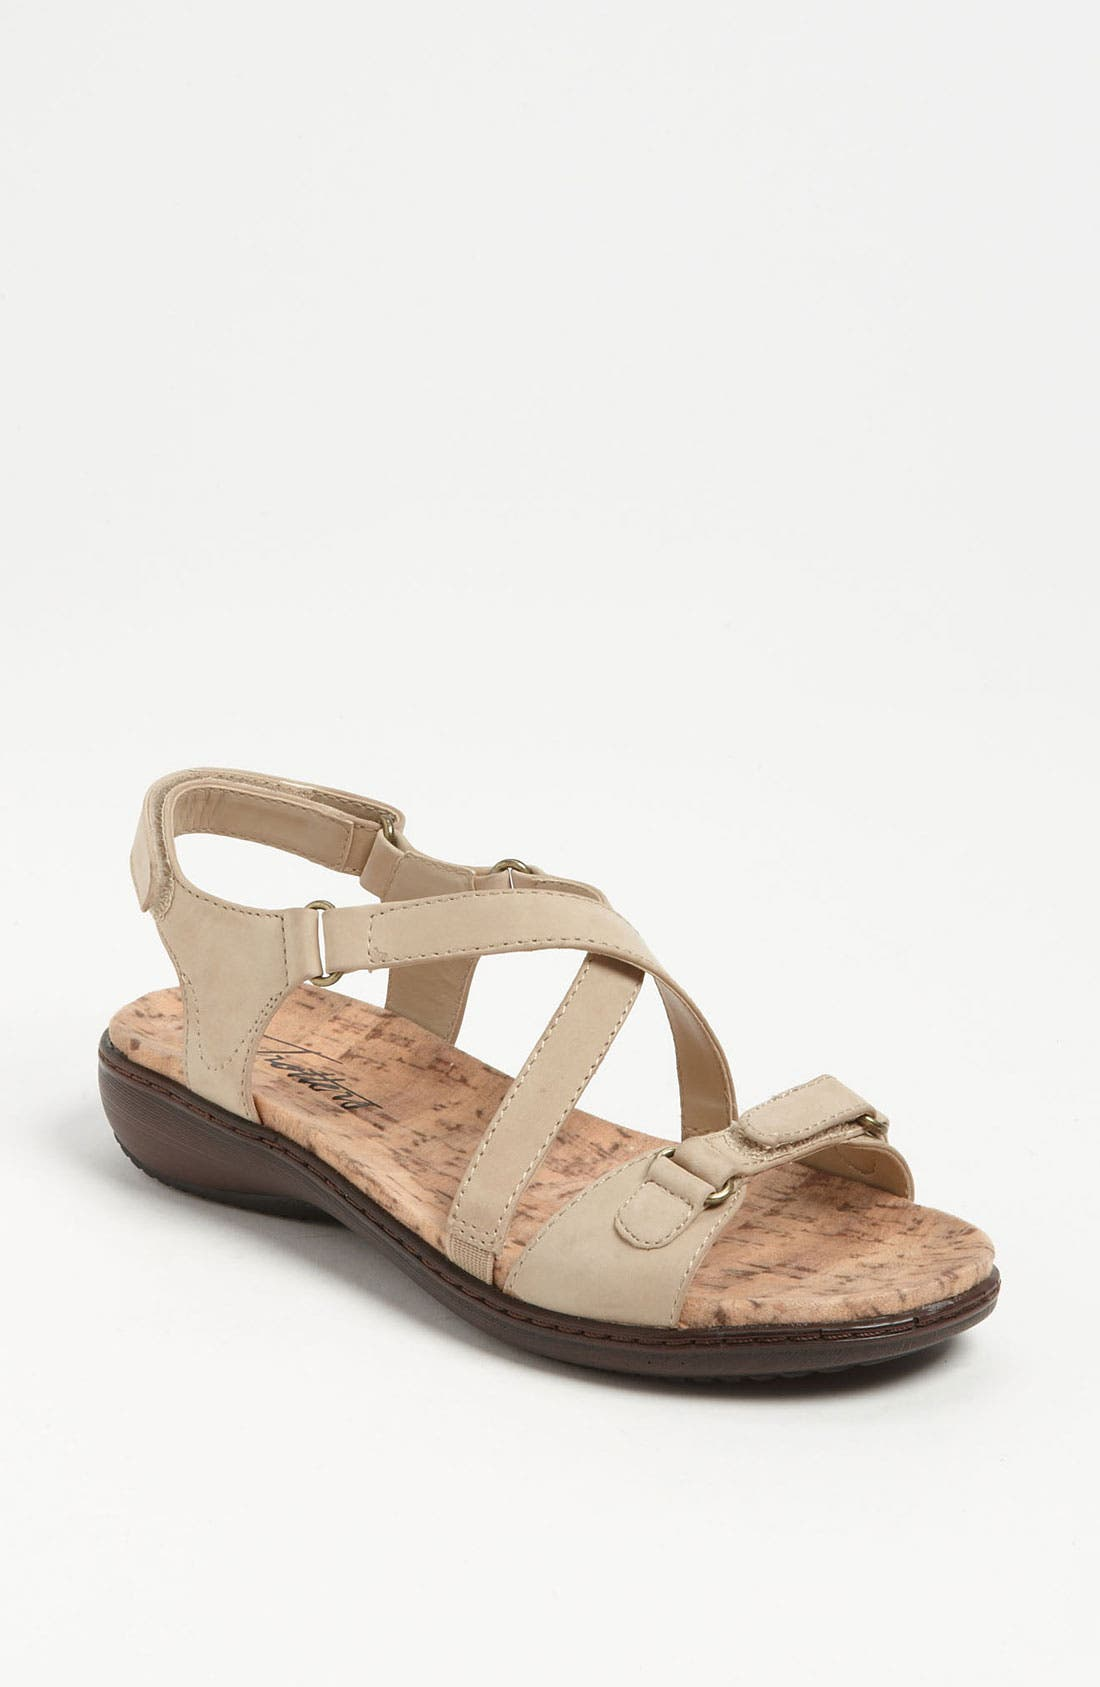 Alternate Image 1 Selected - Trotters 'Kylie' Sandal